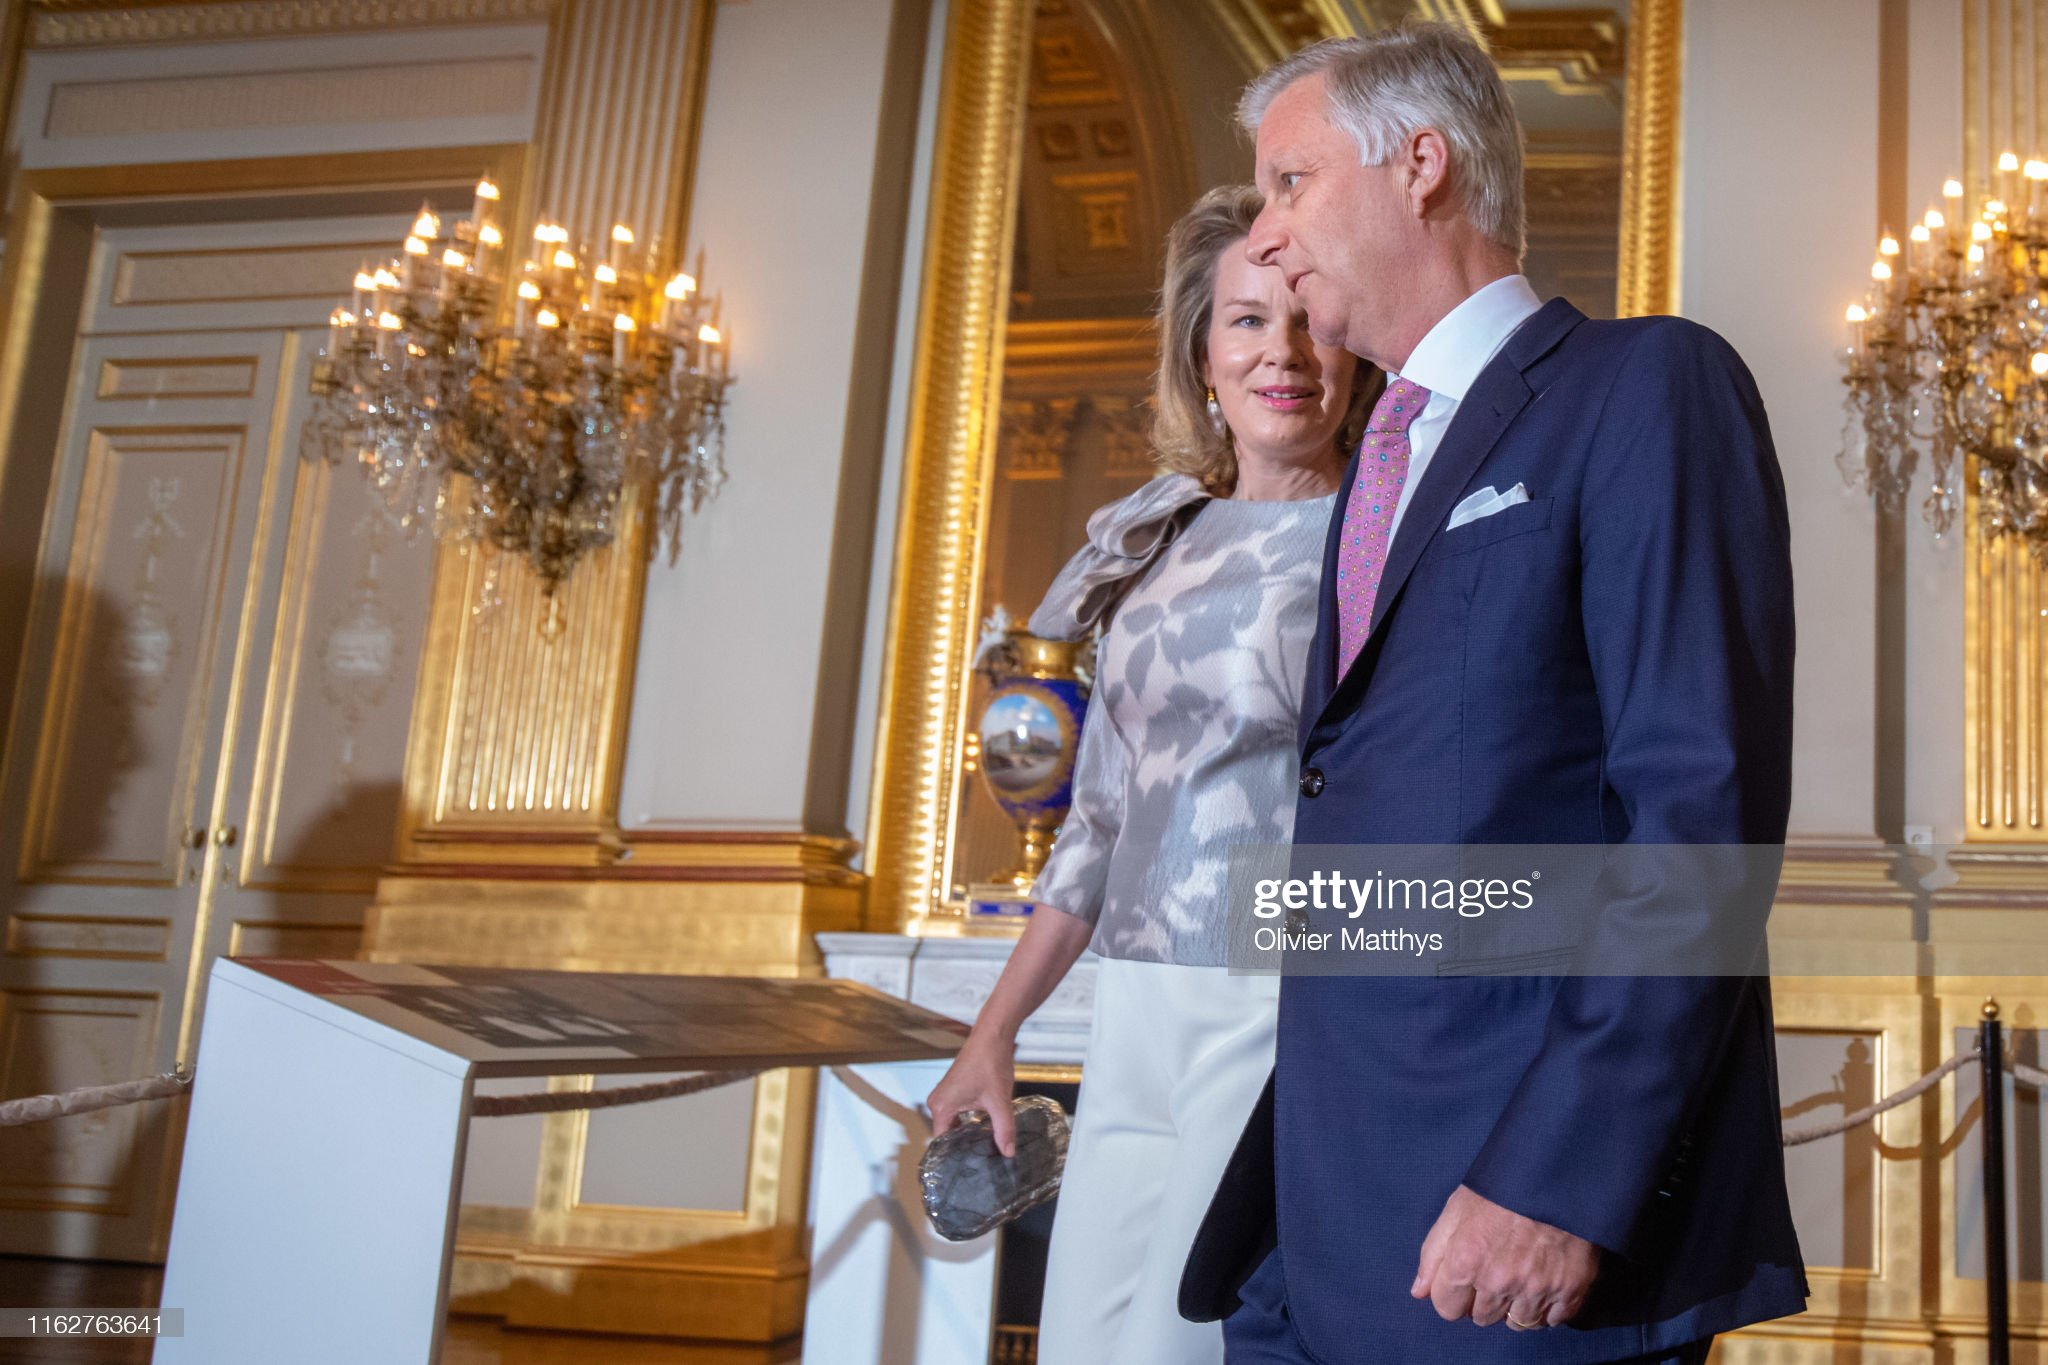 CASA REAL BELGA - Página 54 King-philippe-of-belgium-and-queen-mathilde-attend-the-summer-at-the-picture-id1162763641?s=2048x2048